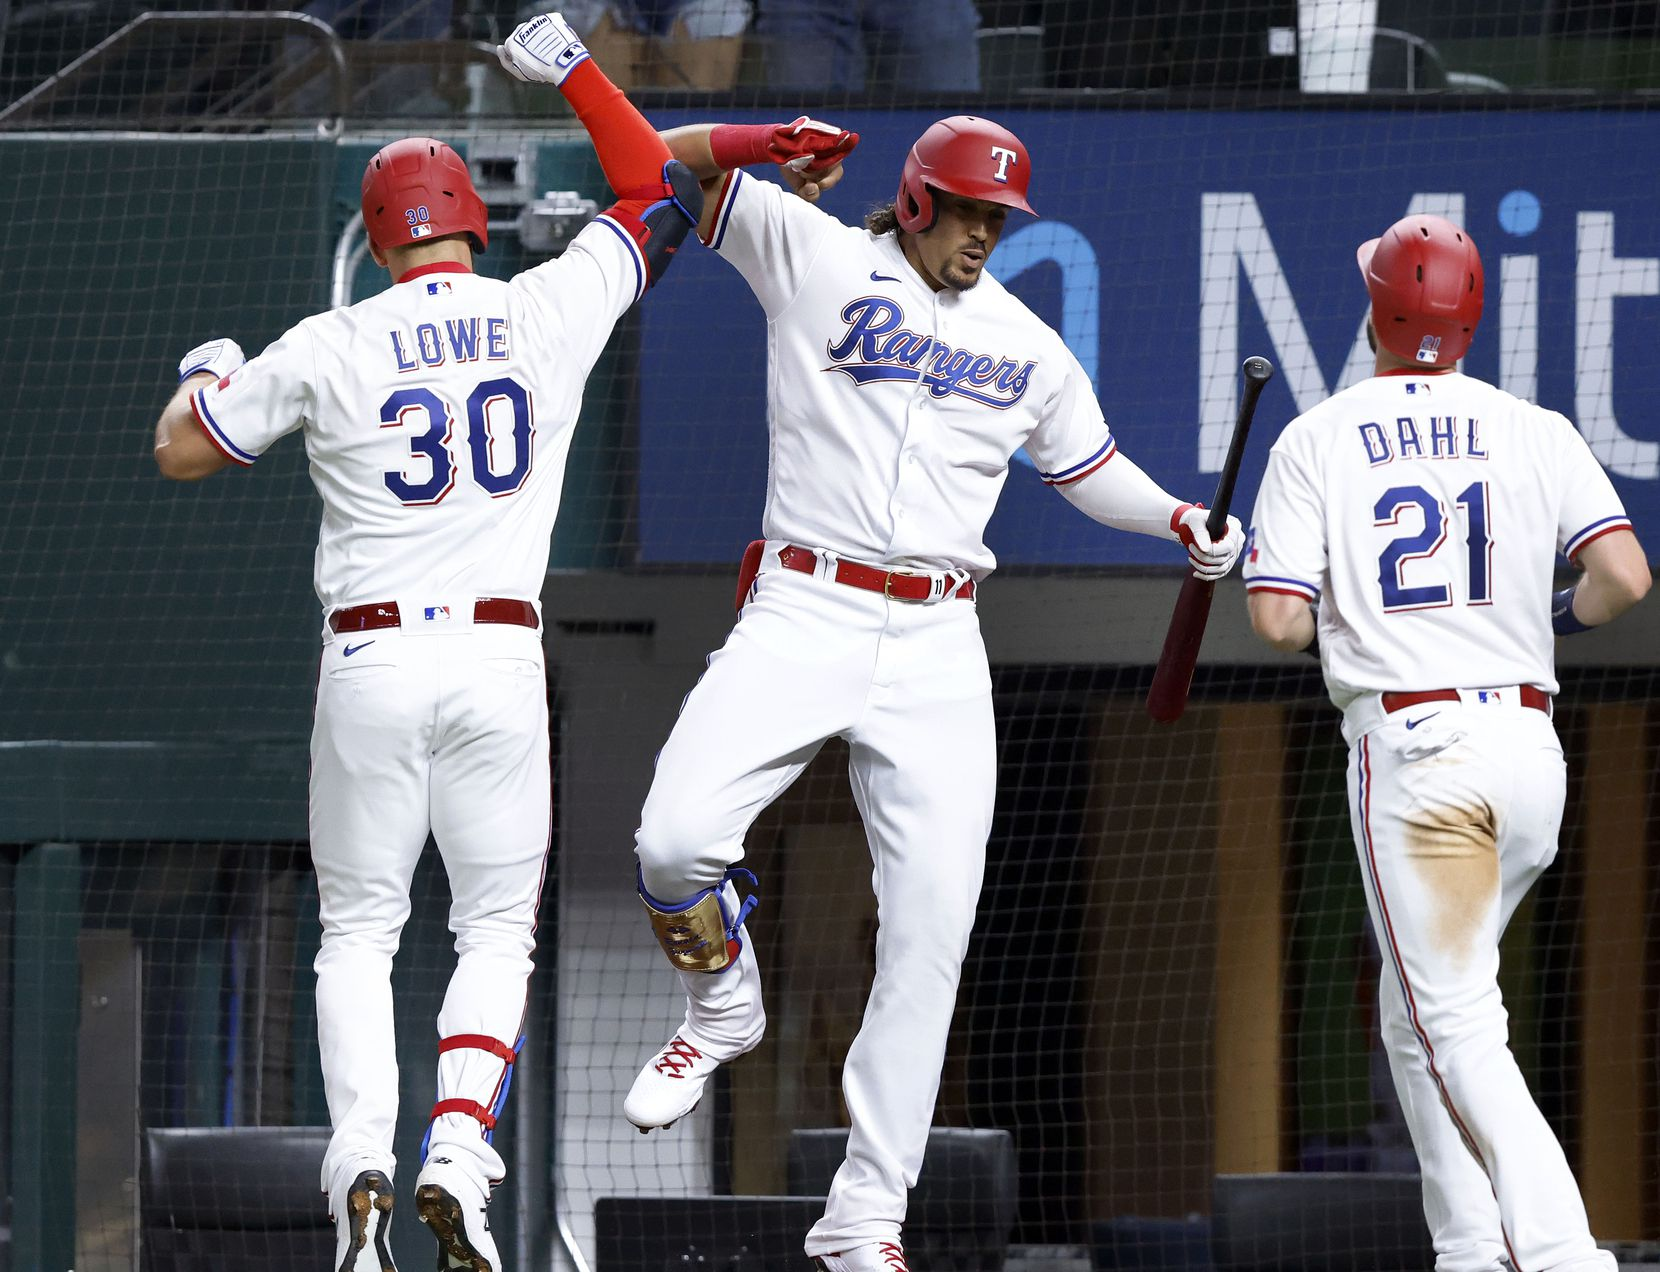 Texas Rangers batter Nate Lowe is congratulated by teammate Ronald Guzman after connecting on a two-run homer during third inning against the Toronto Blue Jays at Globe Life Field in Arlington, Tuesday, April 7, 2021. Lowe scored David Dahl (21). (Tom Fox/The Dallas Morning News)